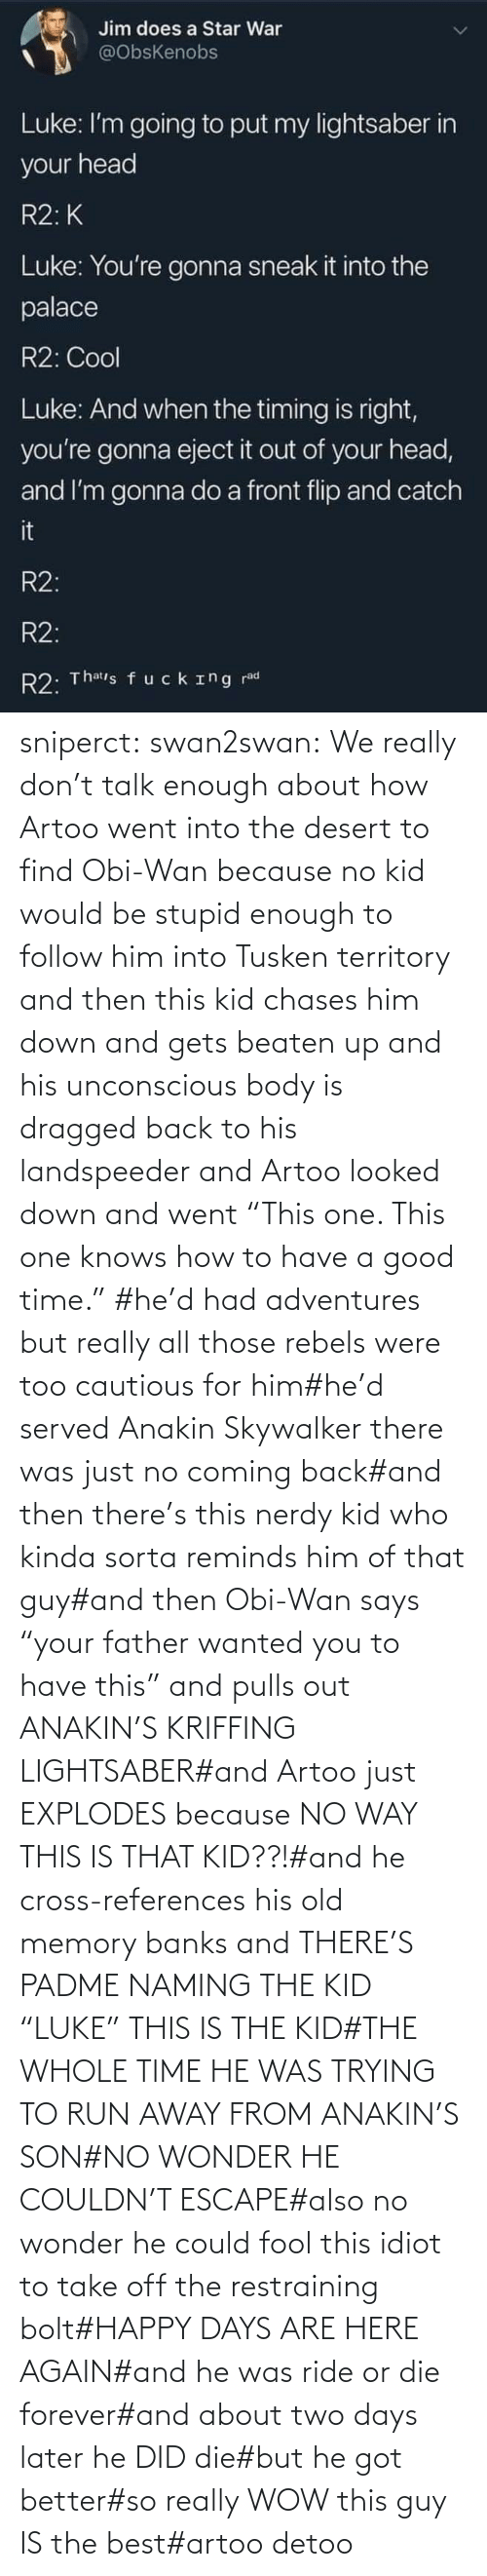 "rebels: sniperct:  swan2swan: We really don't talk enough about how Artoo went into the desert to find Obi-Wan because no kid would be stupid enough to follow him into Tusken territory and then this kid chases him down and gets beaten up and his unconscious body is dragged back to his landspeeder and Artoo looked down and went ""This one. This one knows how to have a good time.""  #he'd had adventures but really all those rebels were too cautious for him#he'd served Anakin Skywalker there was just no coming back#and then there's this nerdy kid who kinda sorta reminds him of that guy#and then Obi-Wan says ""your father wanted you to have this"" and pulls out ANAKIN'S KRIFFING LIGHTSABER#and Artoo just EXPLODES because NO WAY THIS IS THAT KID??!#and he cross-references his old memory banks and THERE'S PADME NAMING THE KID ""LUKE"" THIS IS THE KID#THE WHOLE TIME HE WAS TRYING TO RUN AWAY FROM ANAKIN'S SON#NO WONDER HE COULDN'T ESCAPE#also no wonder he could fool this idiot to take off the restraining bolt#HAPPY DAYS ARE HERE AGAIN#and he was ride or die forever#and about two days later he DID die#but he got better#so really WOW this guy IS the best#artoo detoo"